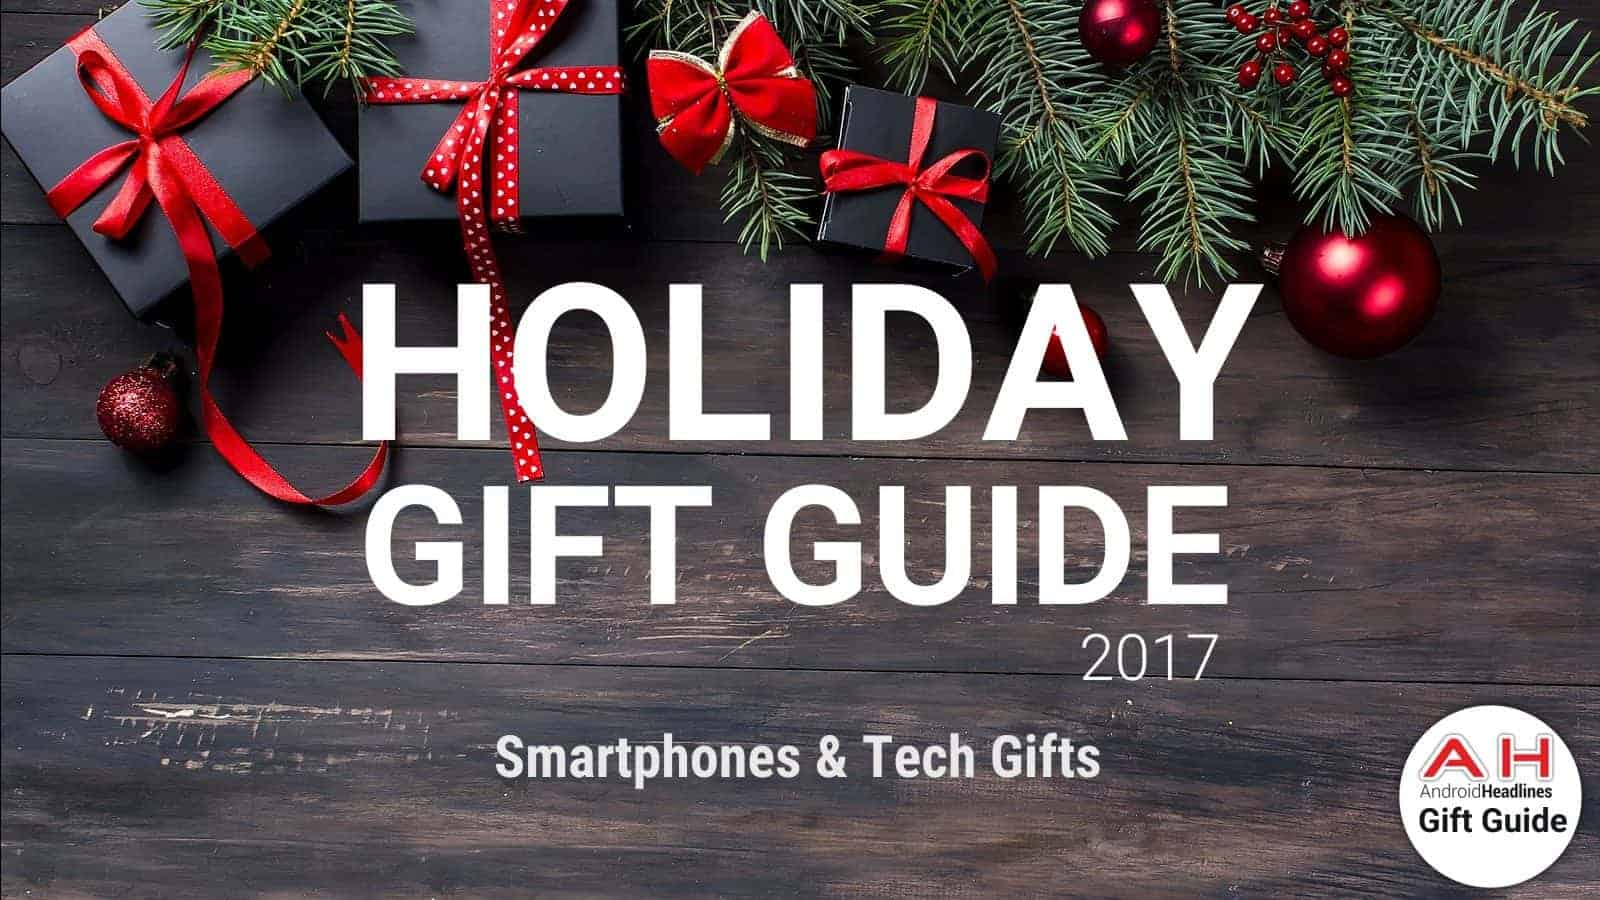 Holiday gift guide 2017 2018 the ultimate smartphone tech holiday gift guide 2017 2018 the ultimate smartphone tech gift guide androidheadlines negle Gallery